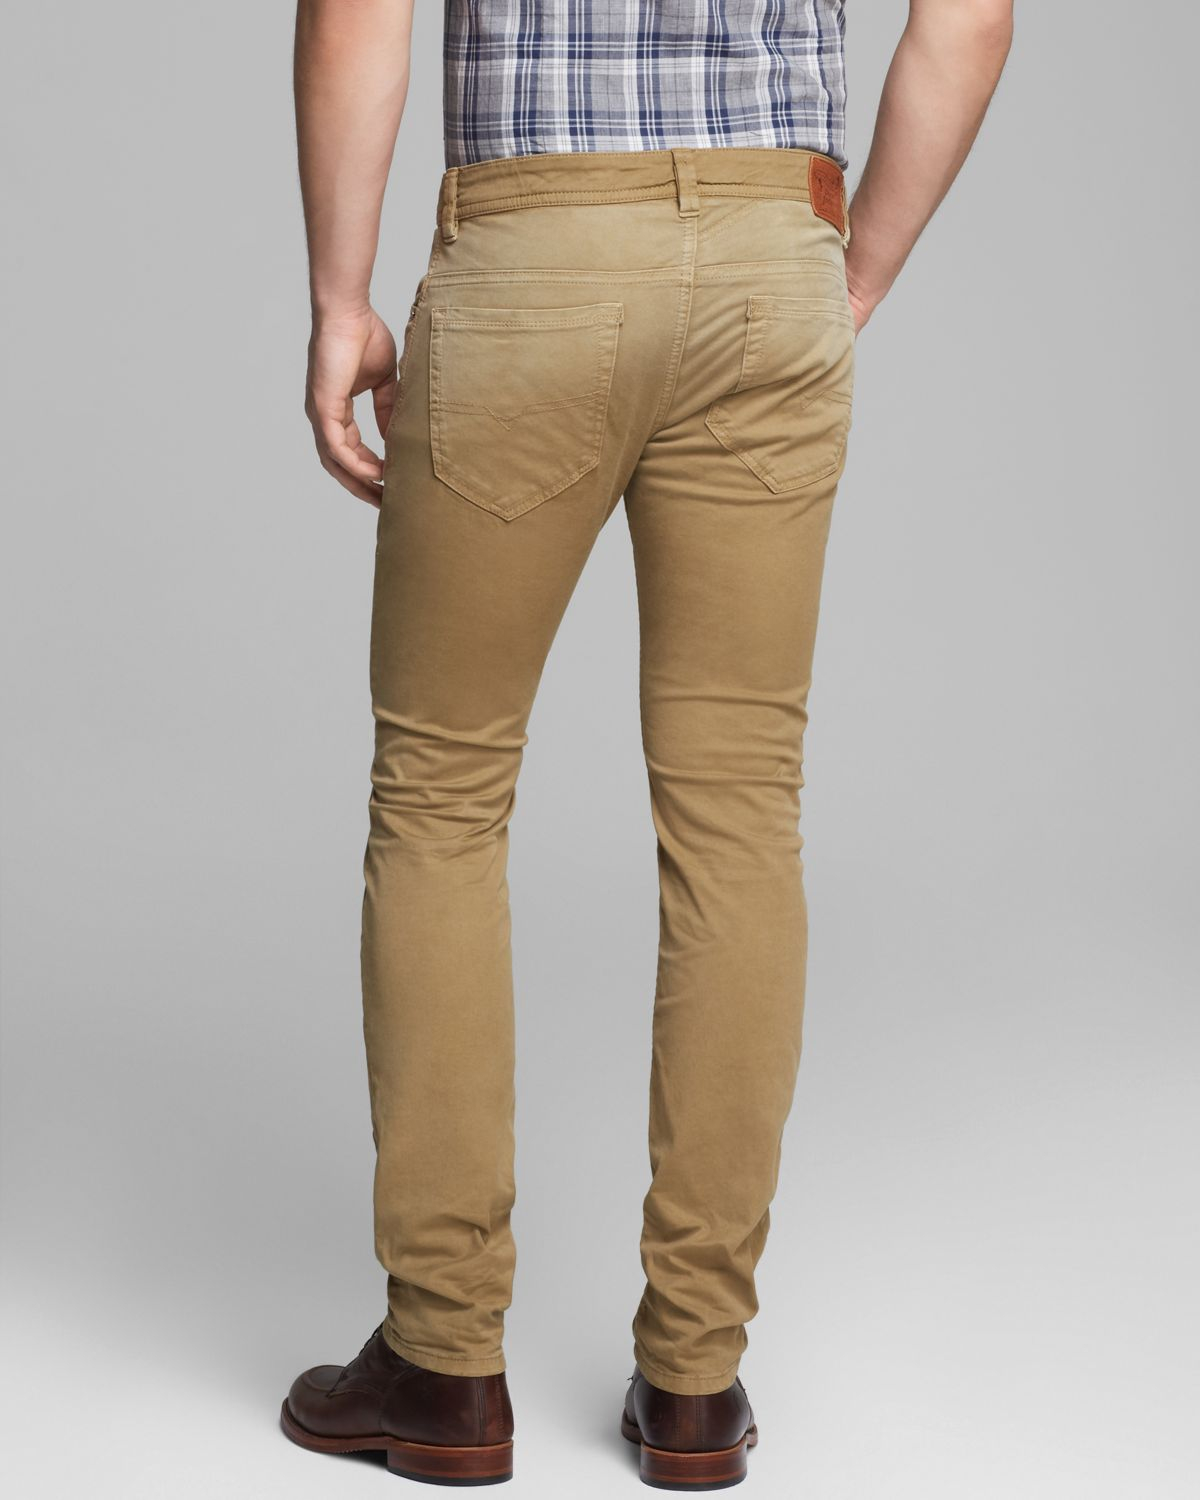 Lyst - Diesel Jeans Thavar Slim Fit in Tan in Brown for Men